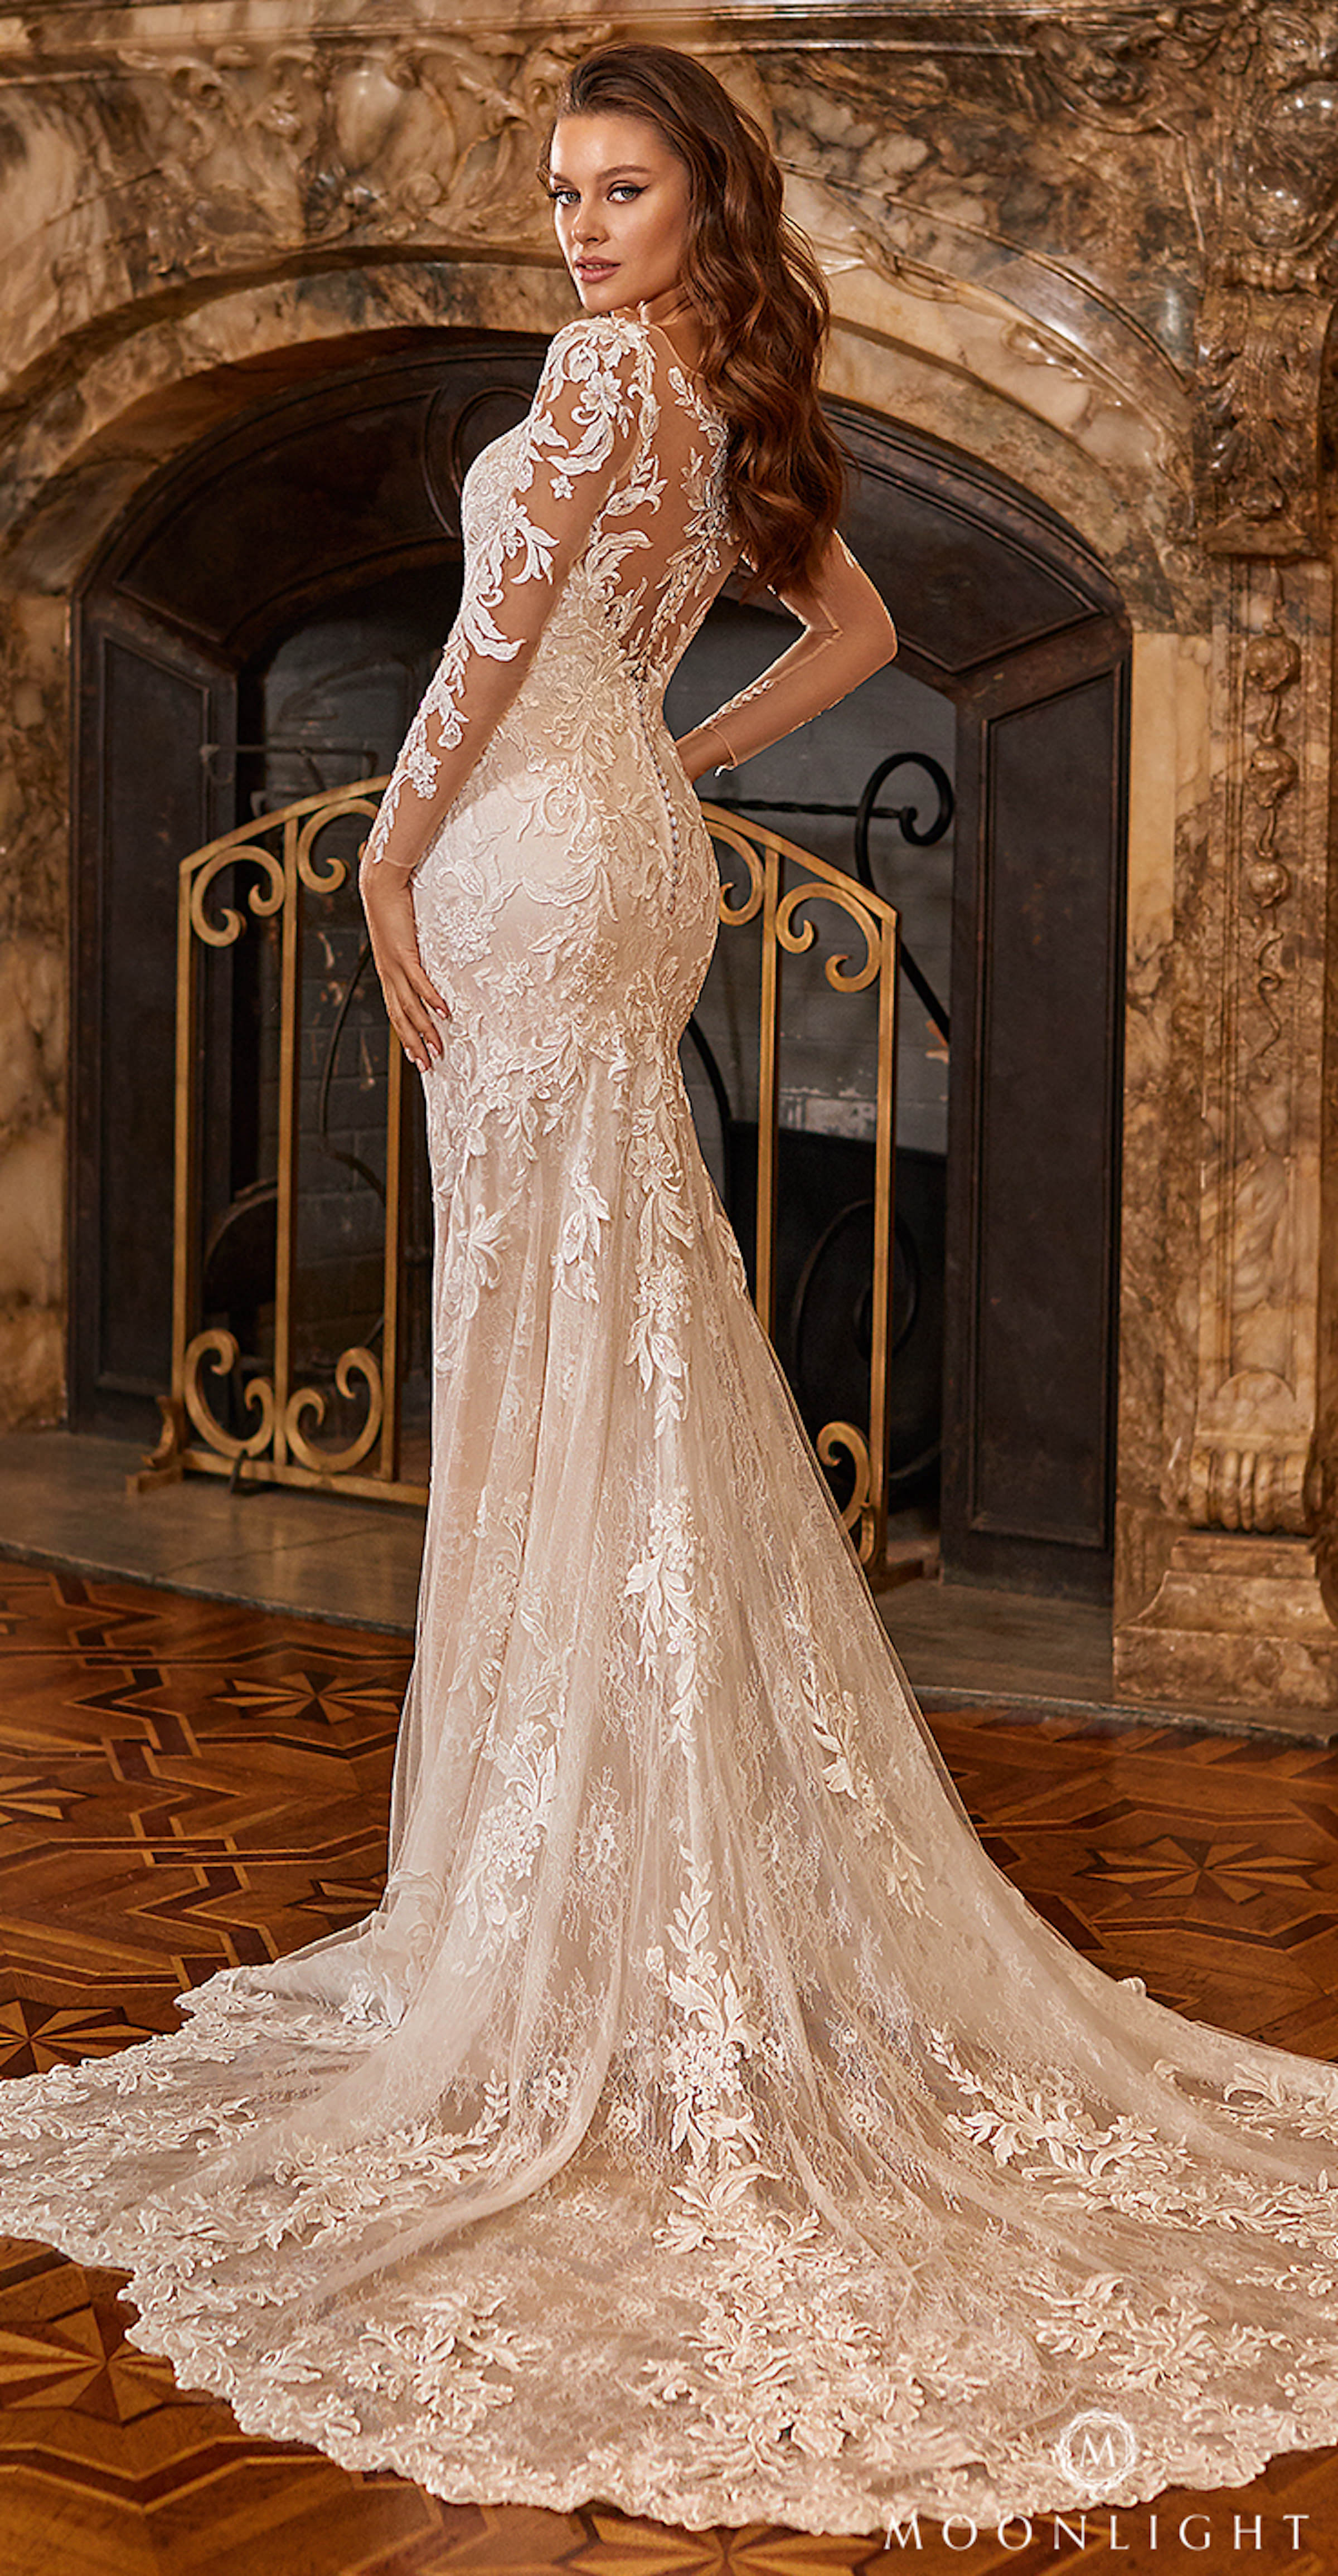 Gilded X Moonlight Collection Fall 2021 Wedding Dresses - J6828